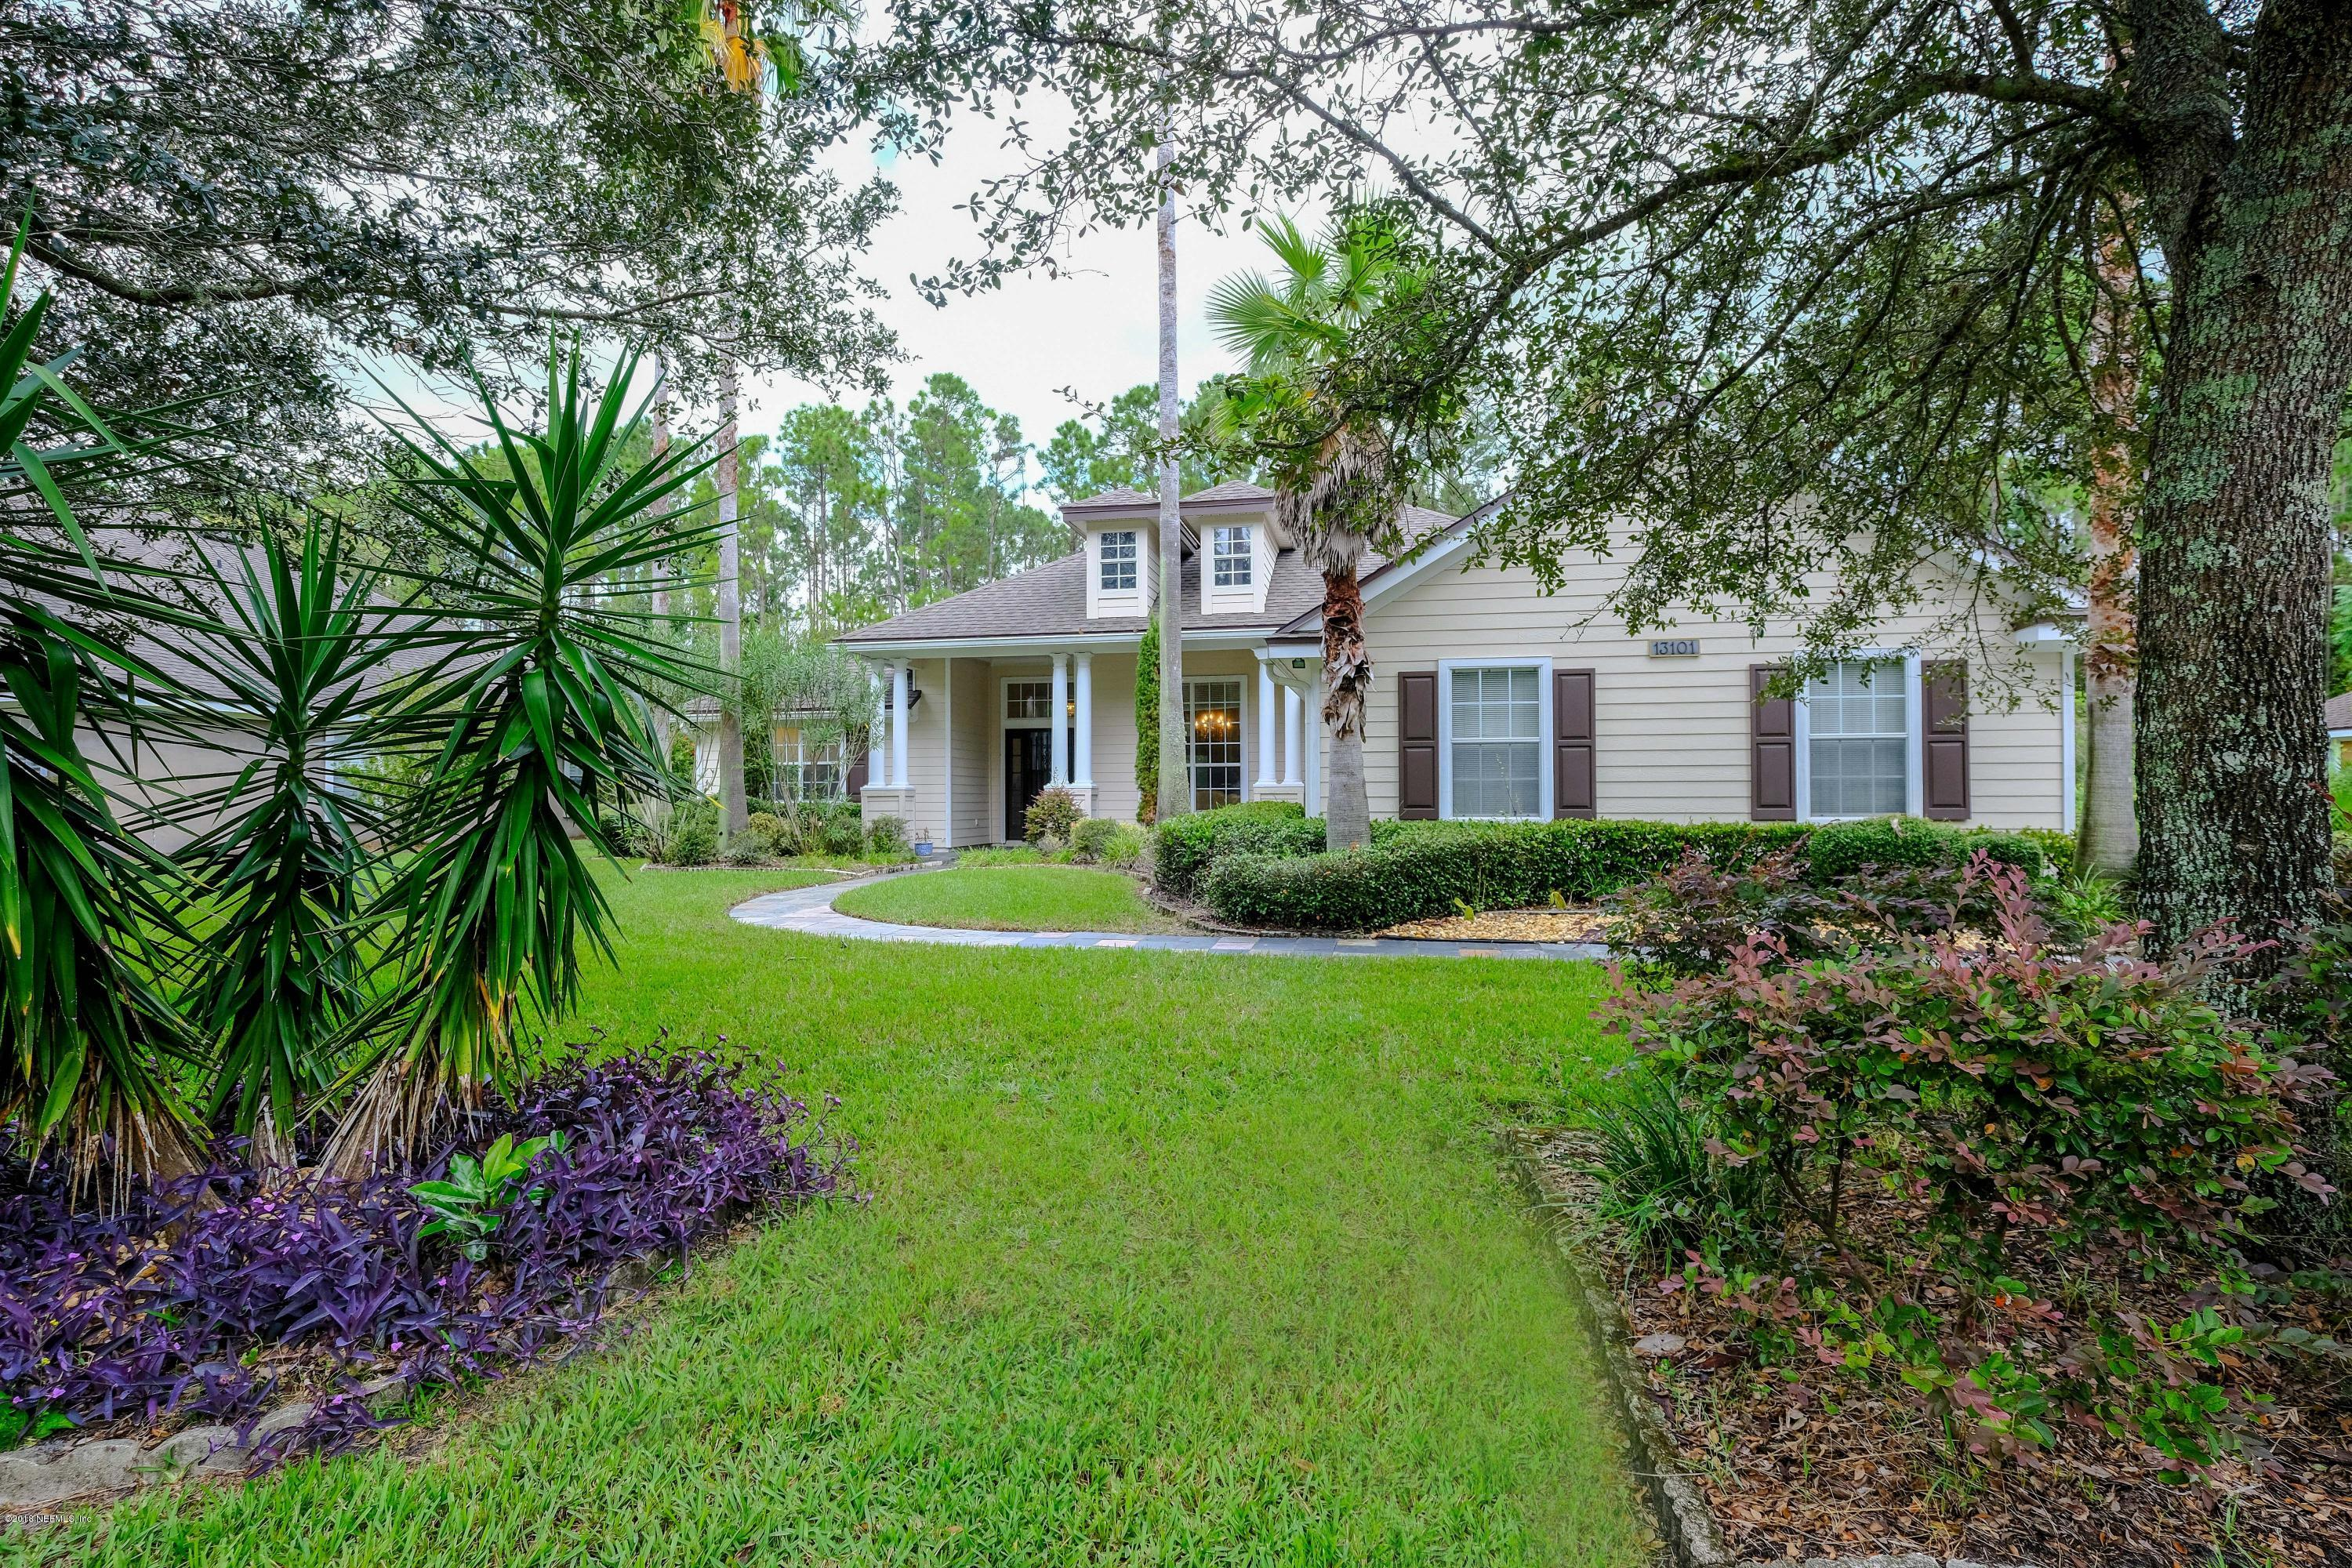 13101 WEXFORD HOLLOW, JACKSONVILLE, FLORIDA 32224, 4 Bedrooms Bedrooms, ,3 BathroomsBathrooms,Residential - single family,For sale,WEXFORD HOLLOW,969956